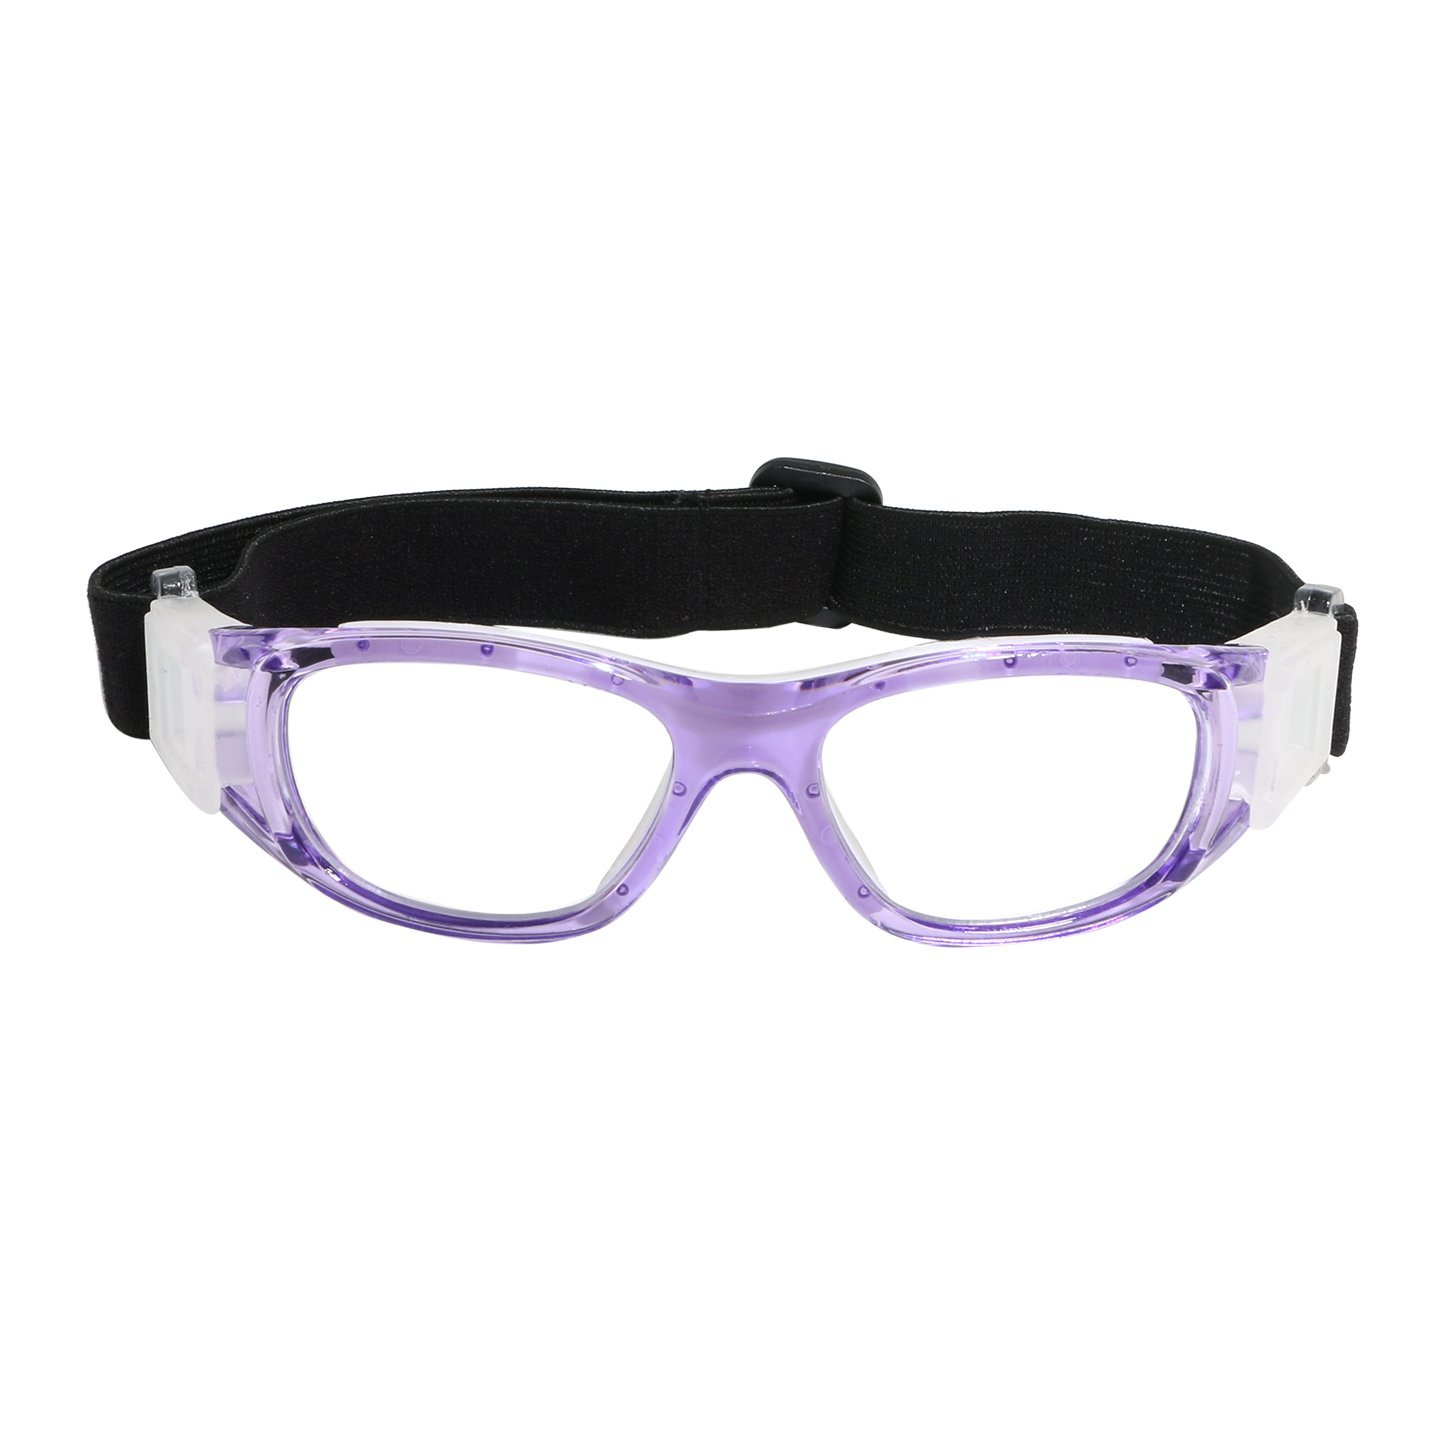 184170e227fa Get Quotations · Kids Sports Goggles Outdoor Eye Protection Anti-fog Safety  Glasses Eyewear for Children with Adjustable